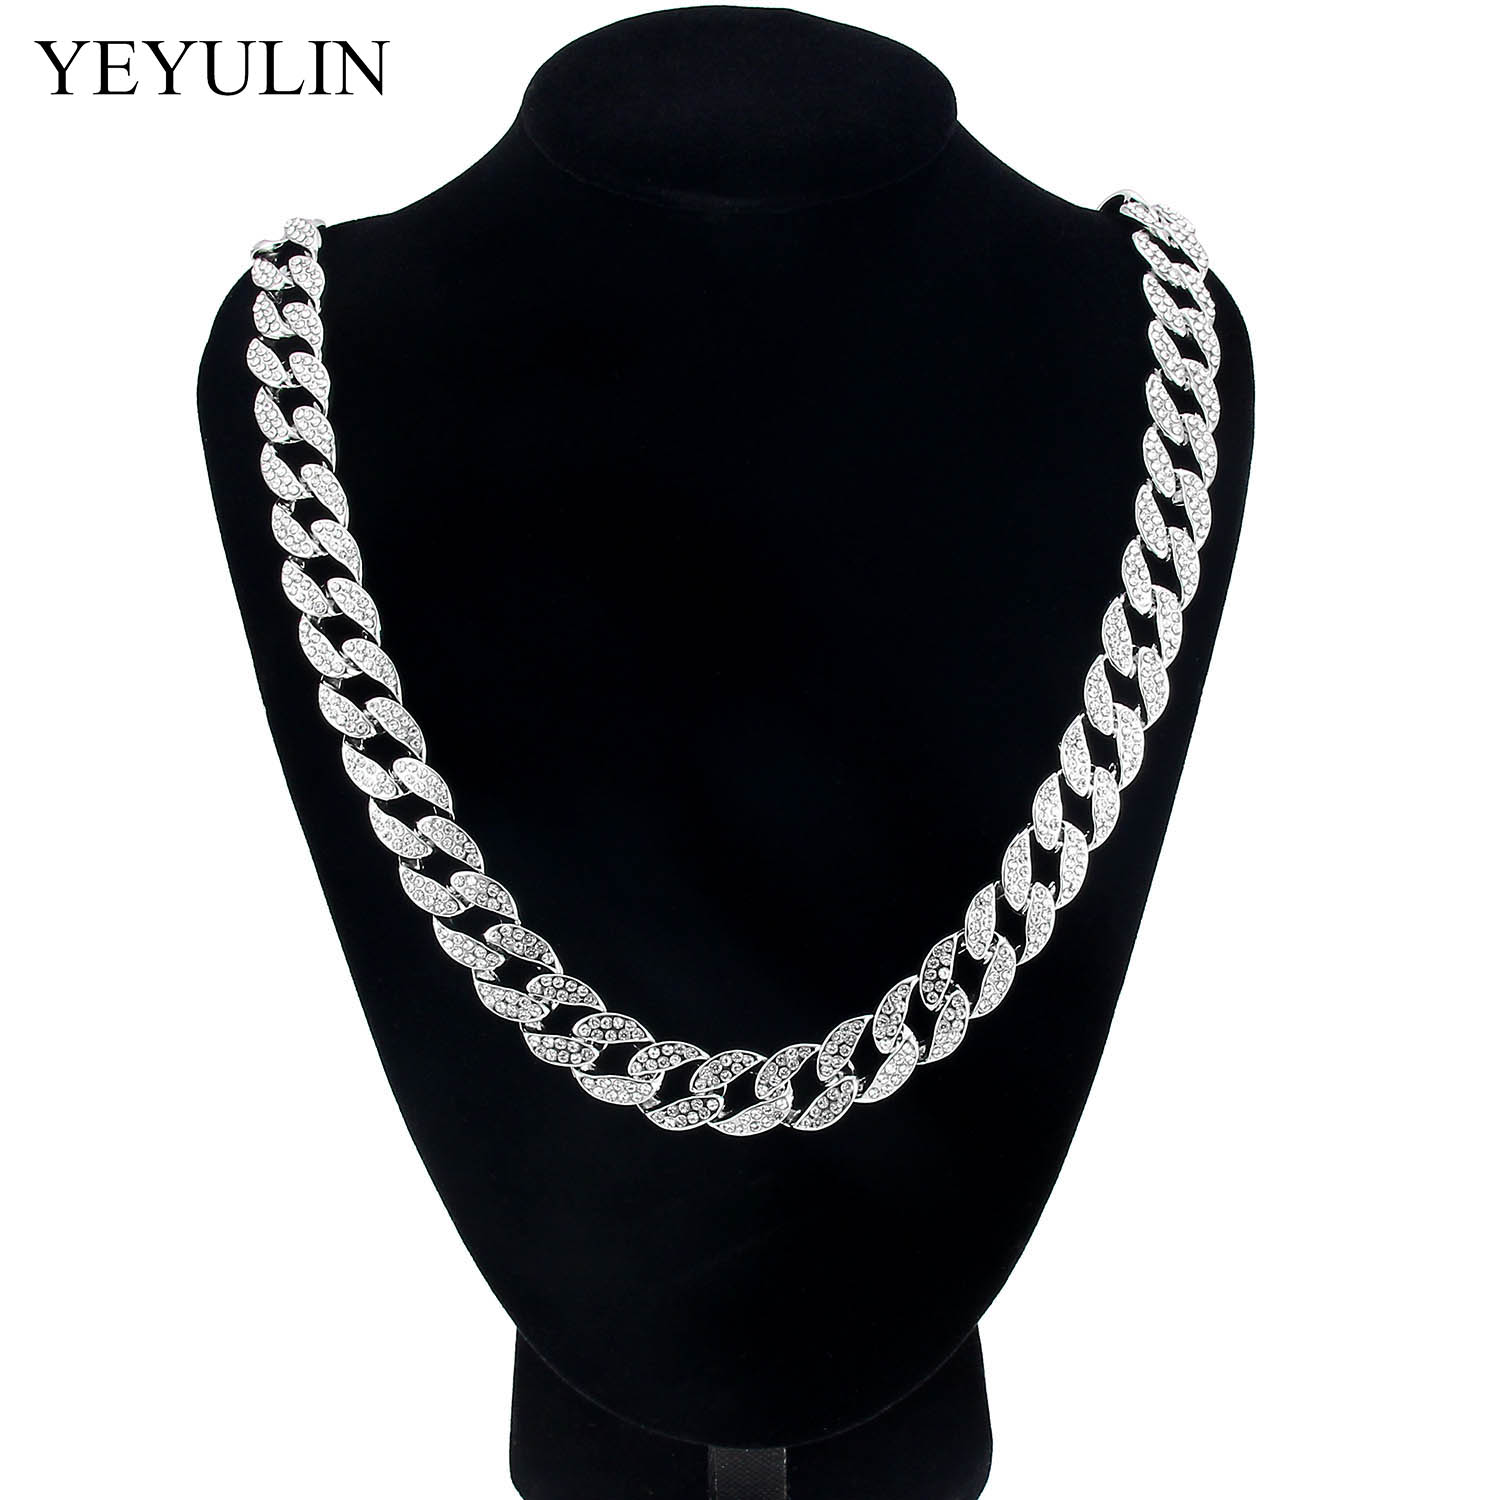 Candid Hip Hop Curb Cuban Link Bling Chain Necklace With Silver Plated Golden Color Crystal Trendy Jewelry Gift For Men Women Wedding Let Our Commodities Go To The World